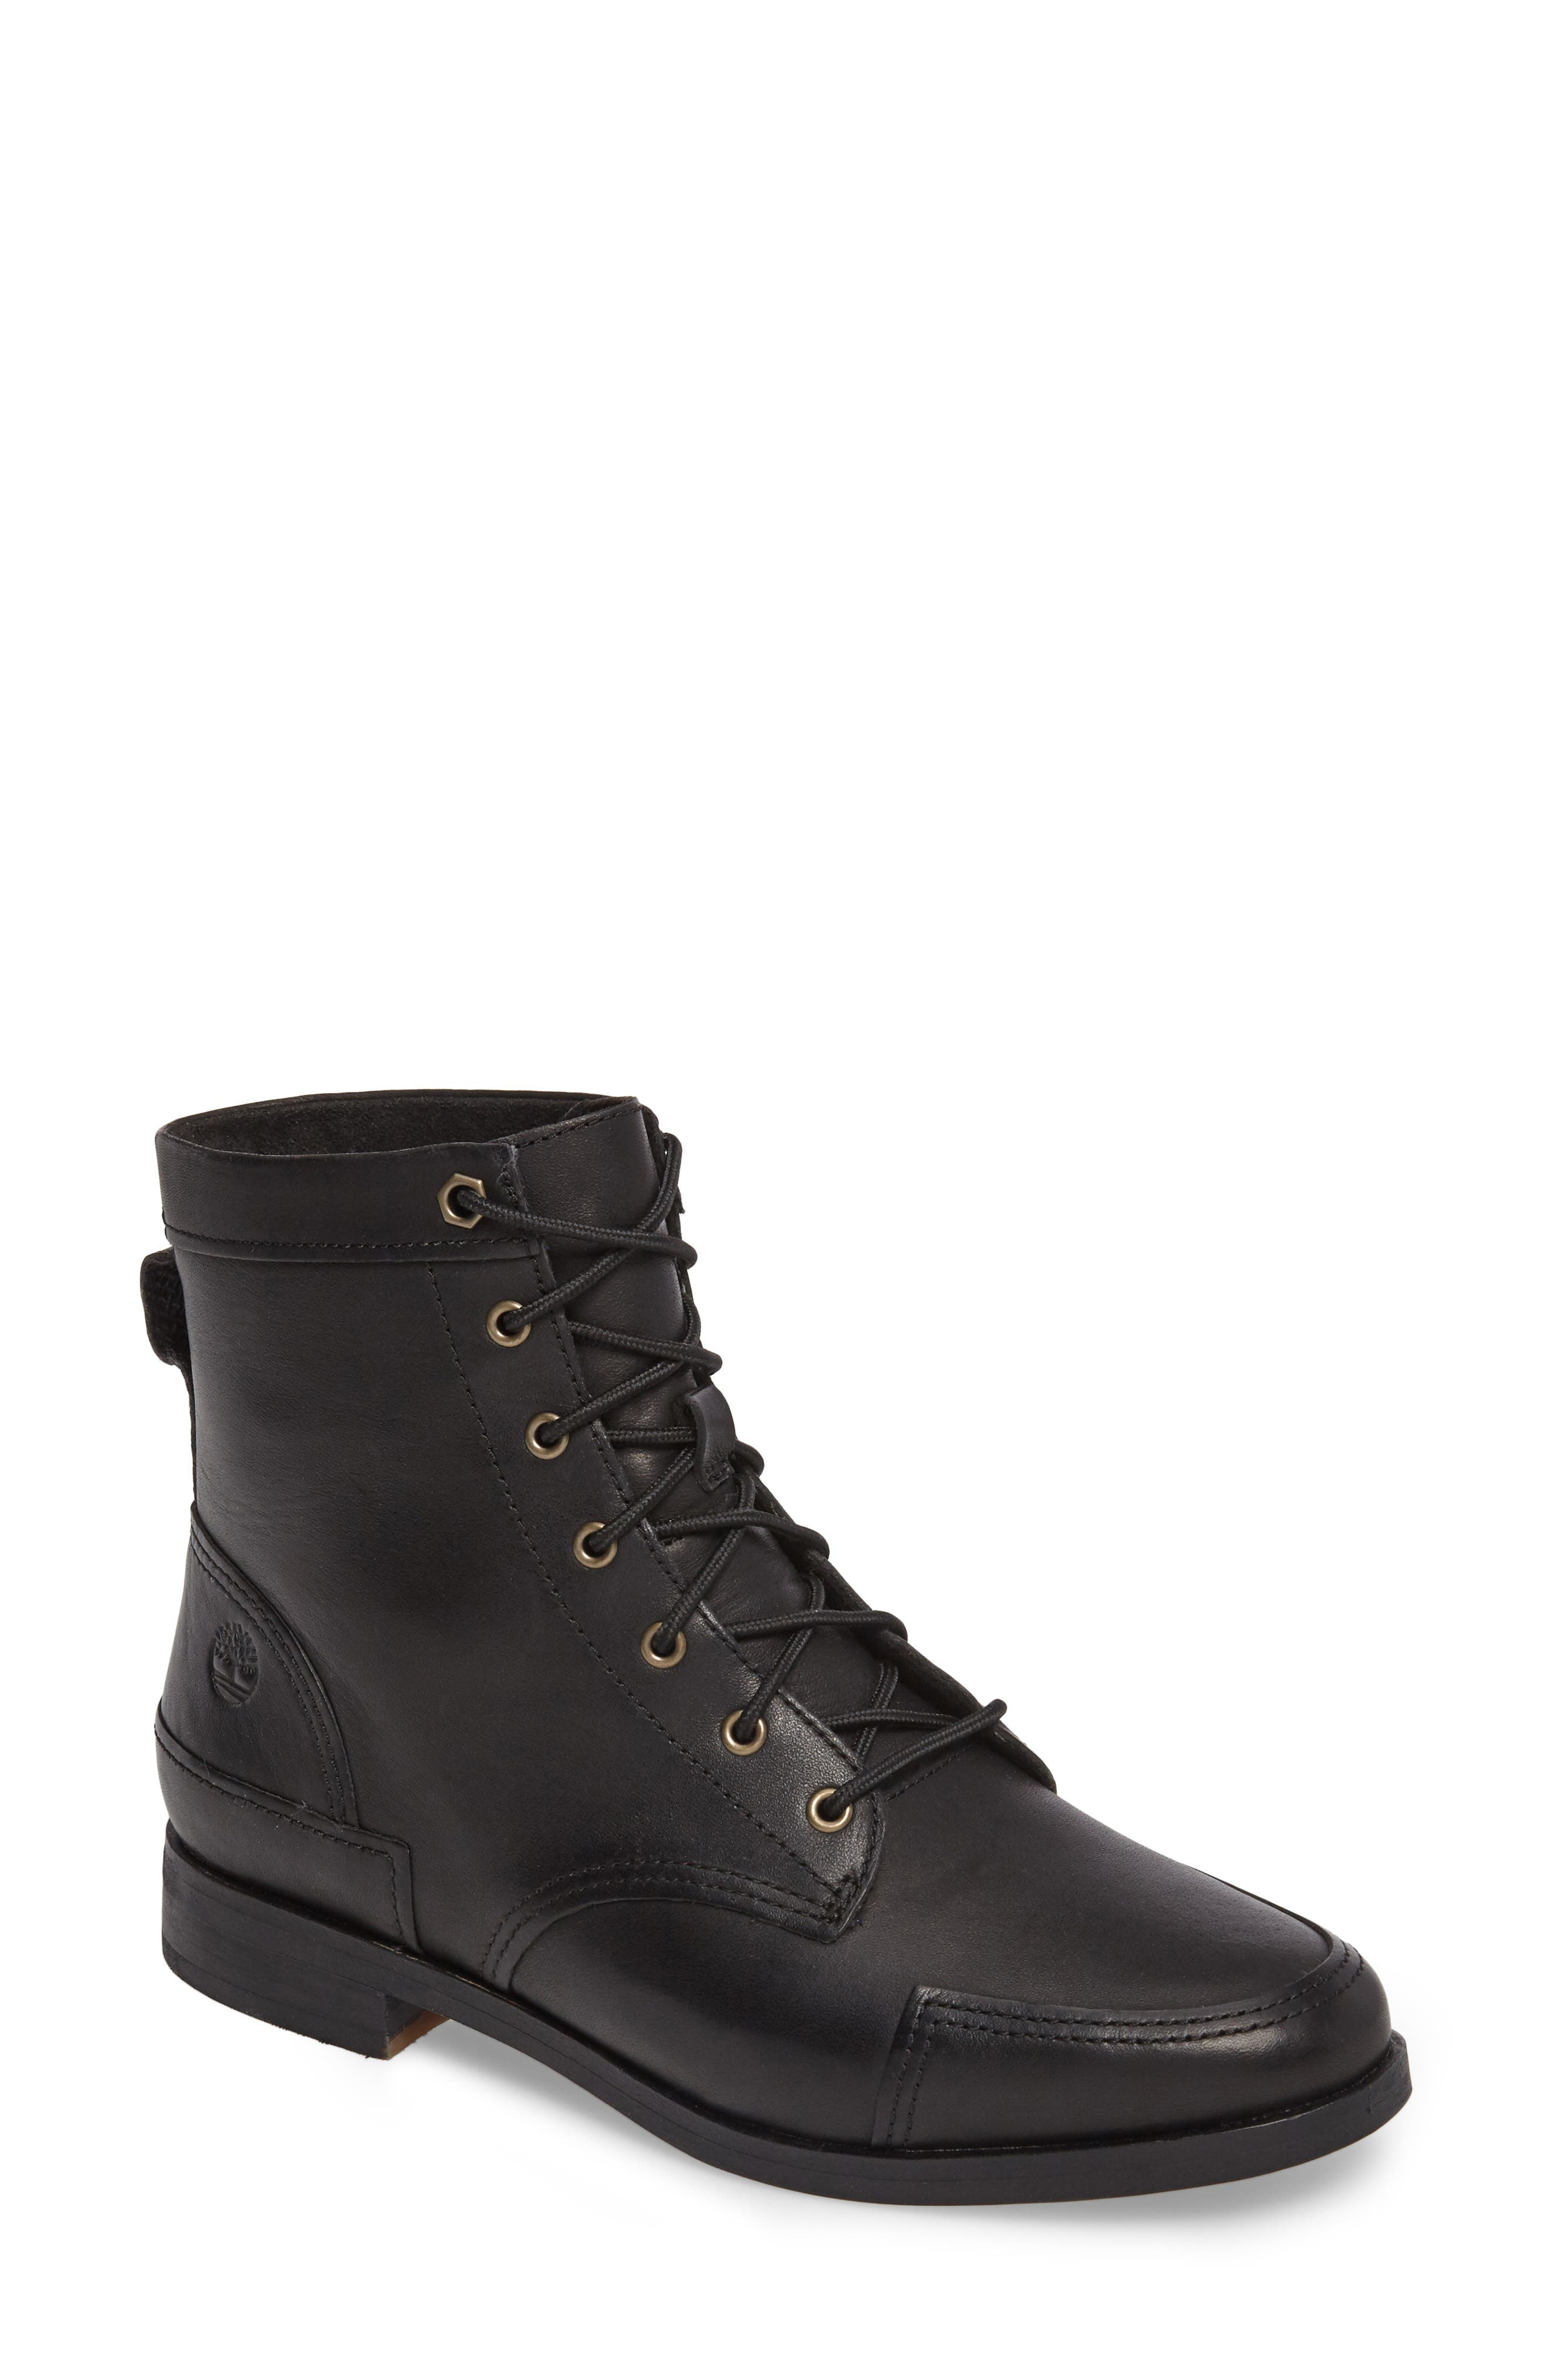 Alternate Image 1 Selected - Timberland Somers Falls Lace-Up Boot (Women)